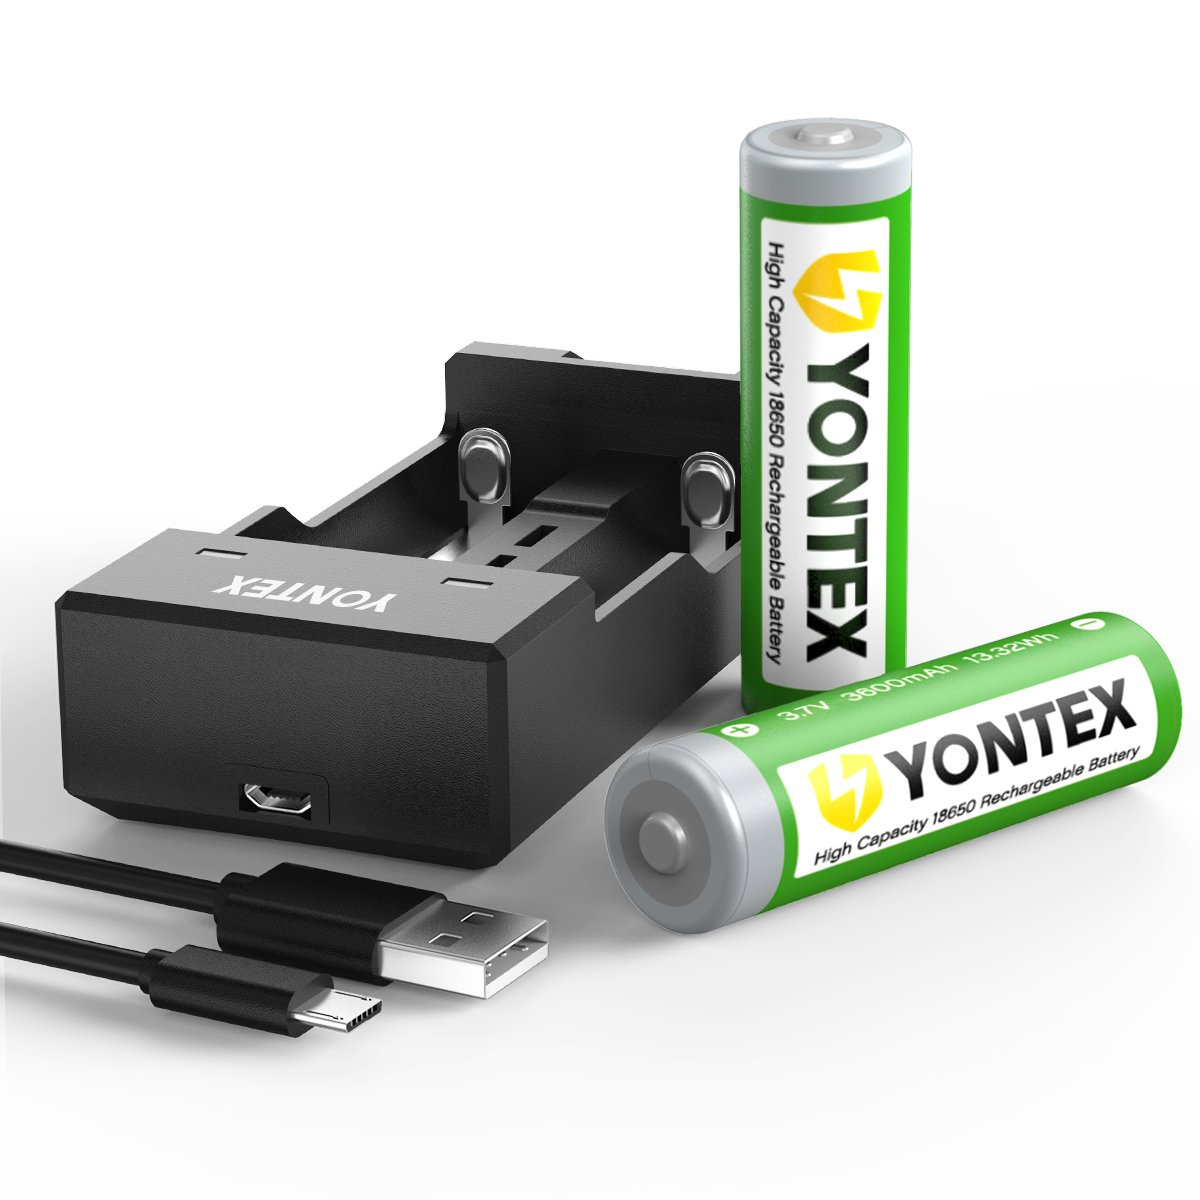 YONTEX [2 Pack] 3.7V 3600mAh 18650 Lithium Rechargeable Batteries with 1 USB 2-Bay Battery Charger and 1 Battery Storage Case [ More Power, Lighter Life ]